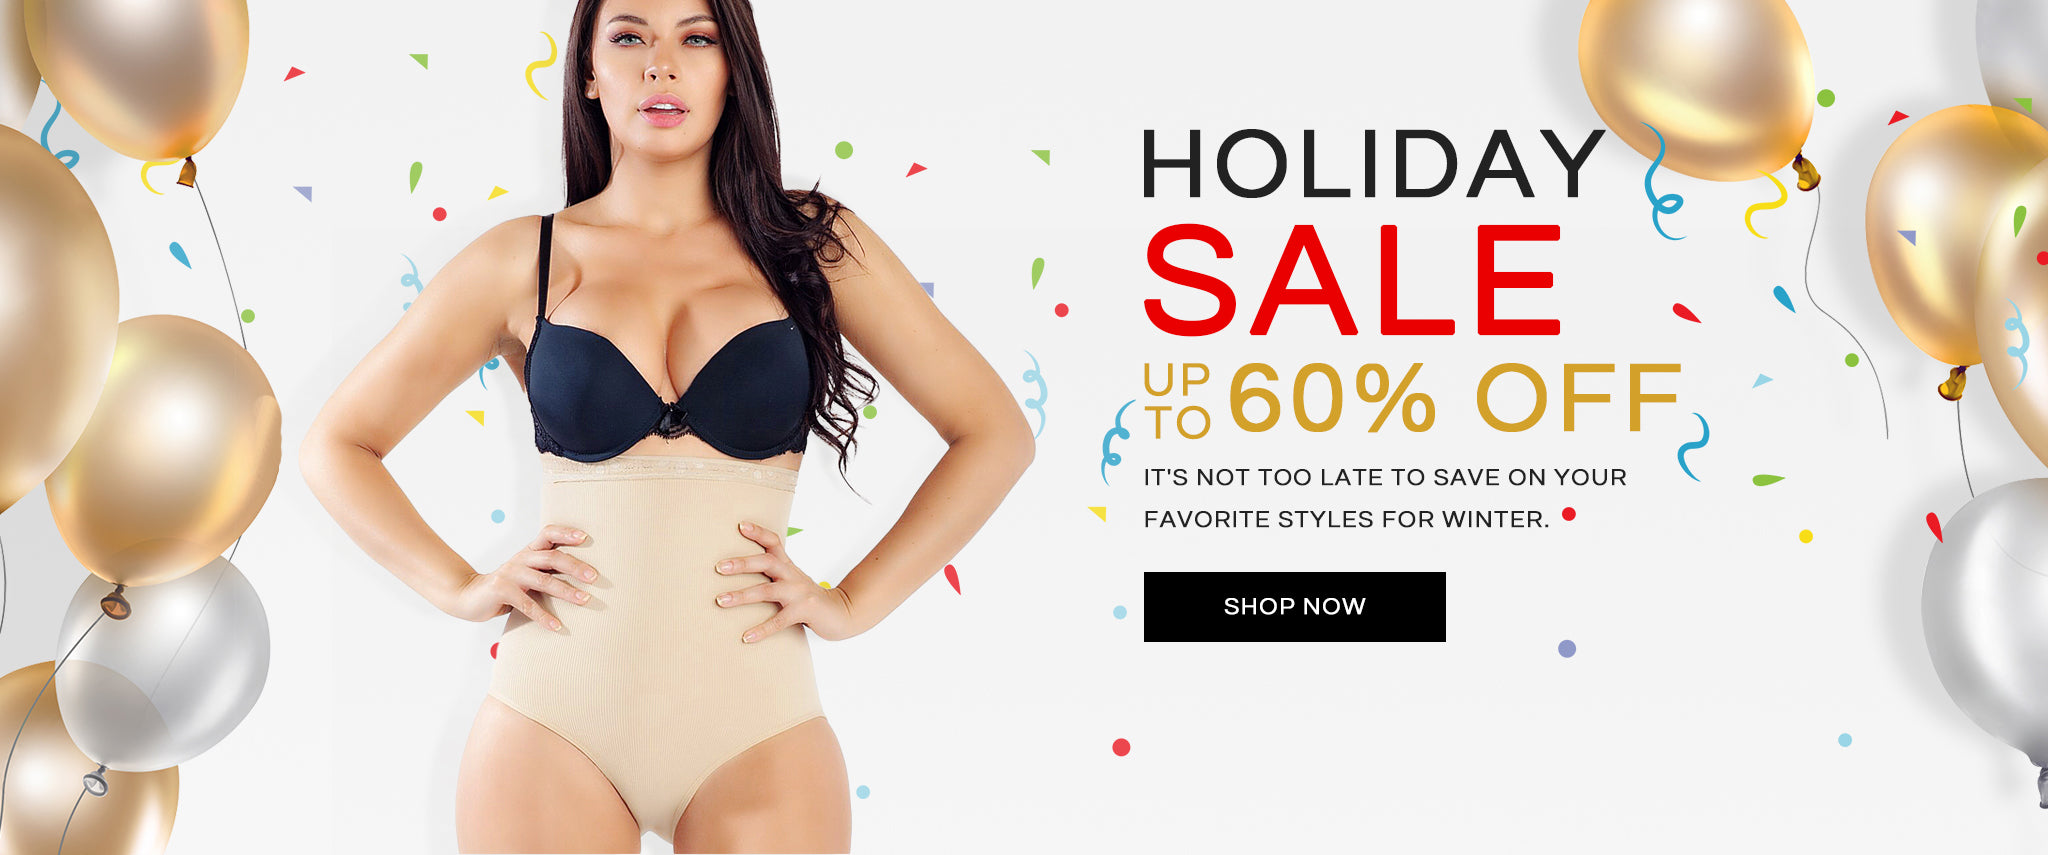 Loverbeauty Shapewear Sale